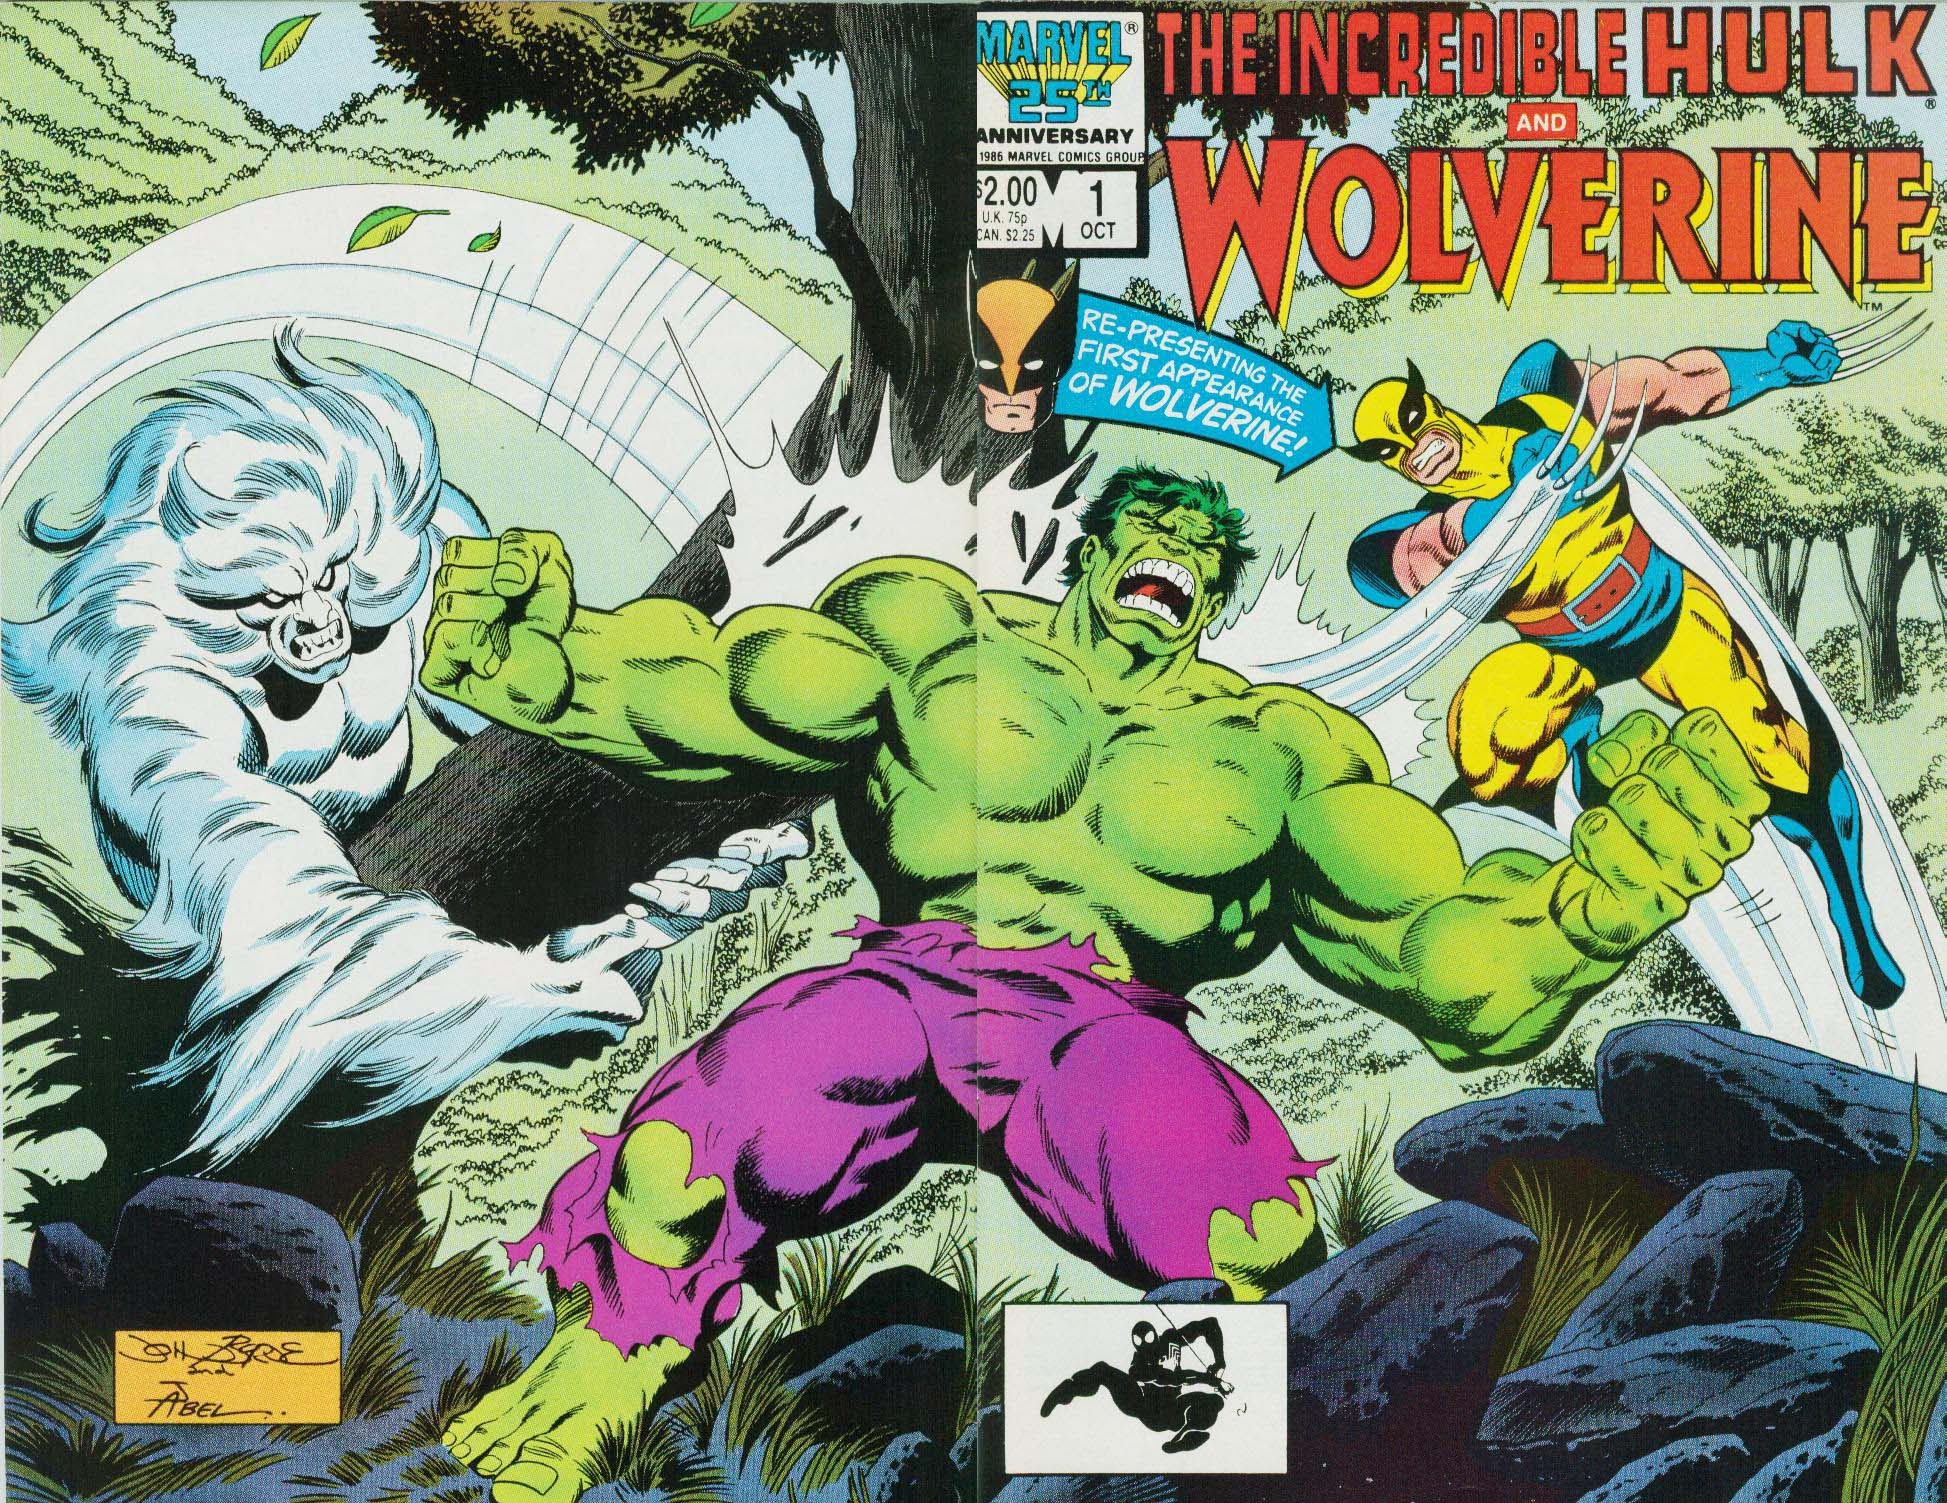 The Incredible Hulk and Wolverine Full Page 1